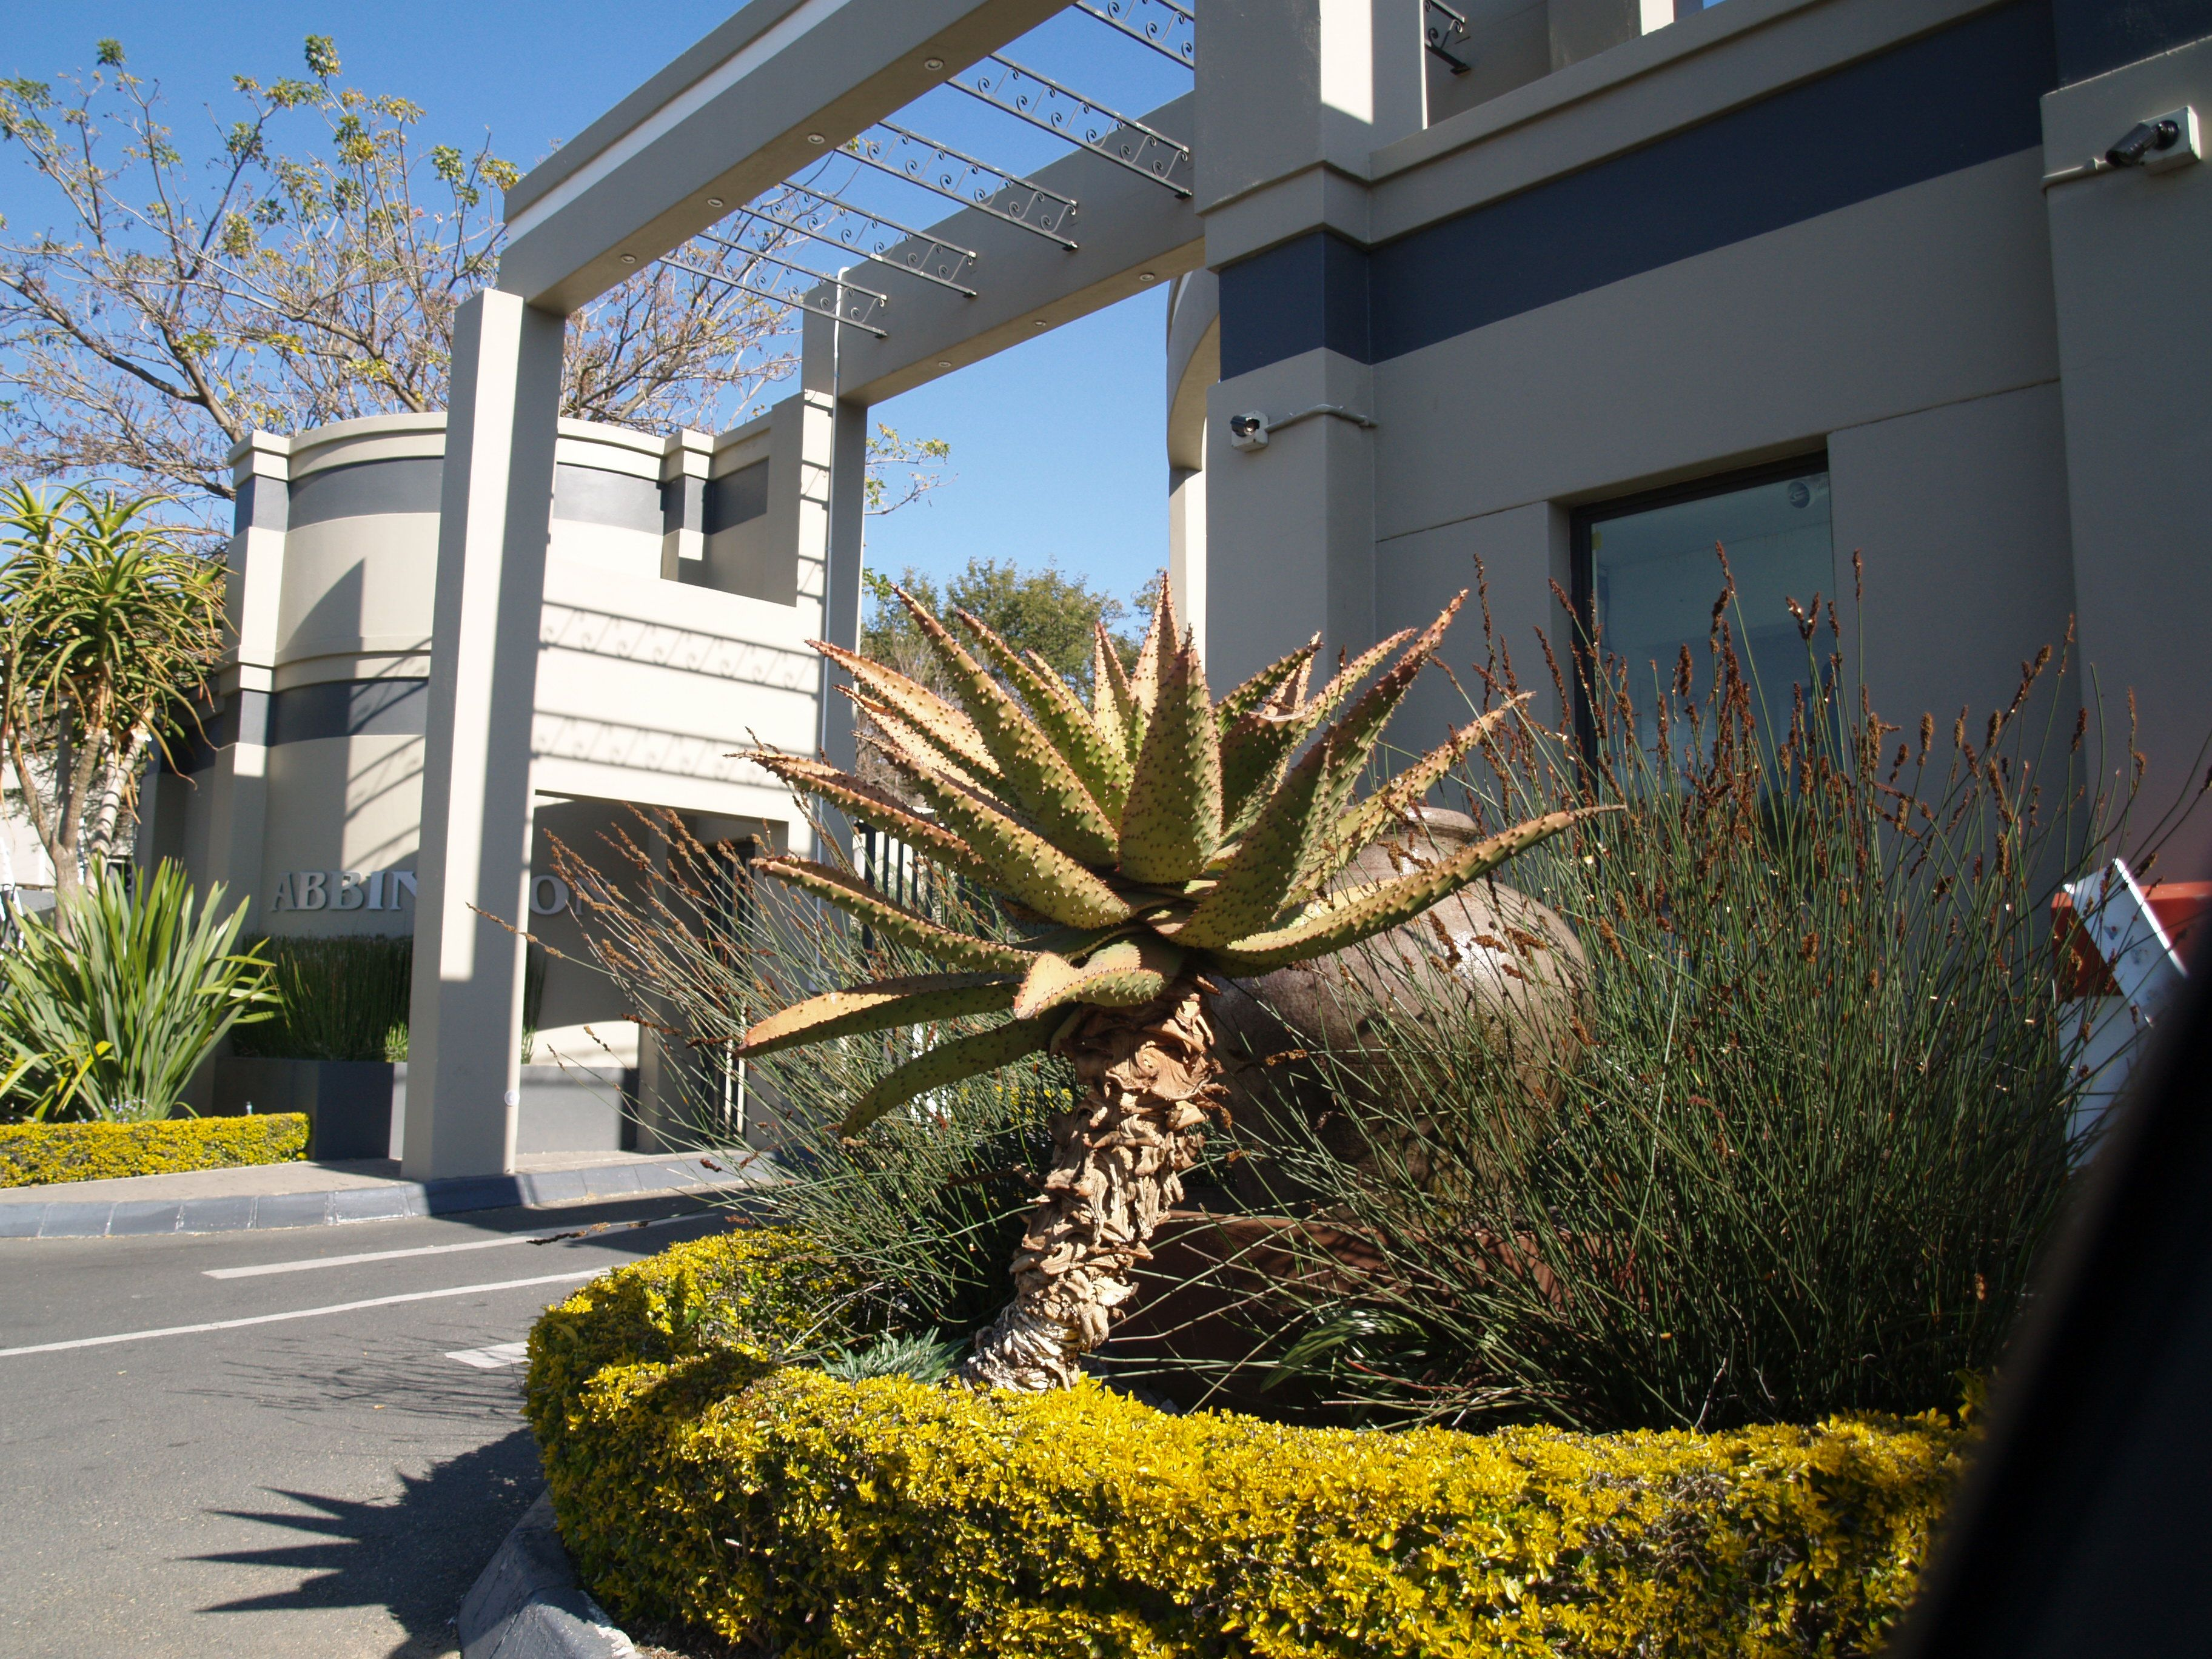 Dalberry Apartments - Dalberry Guesthouse Dalberry Guesthouse